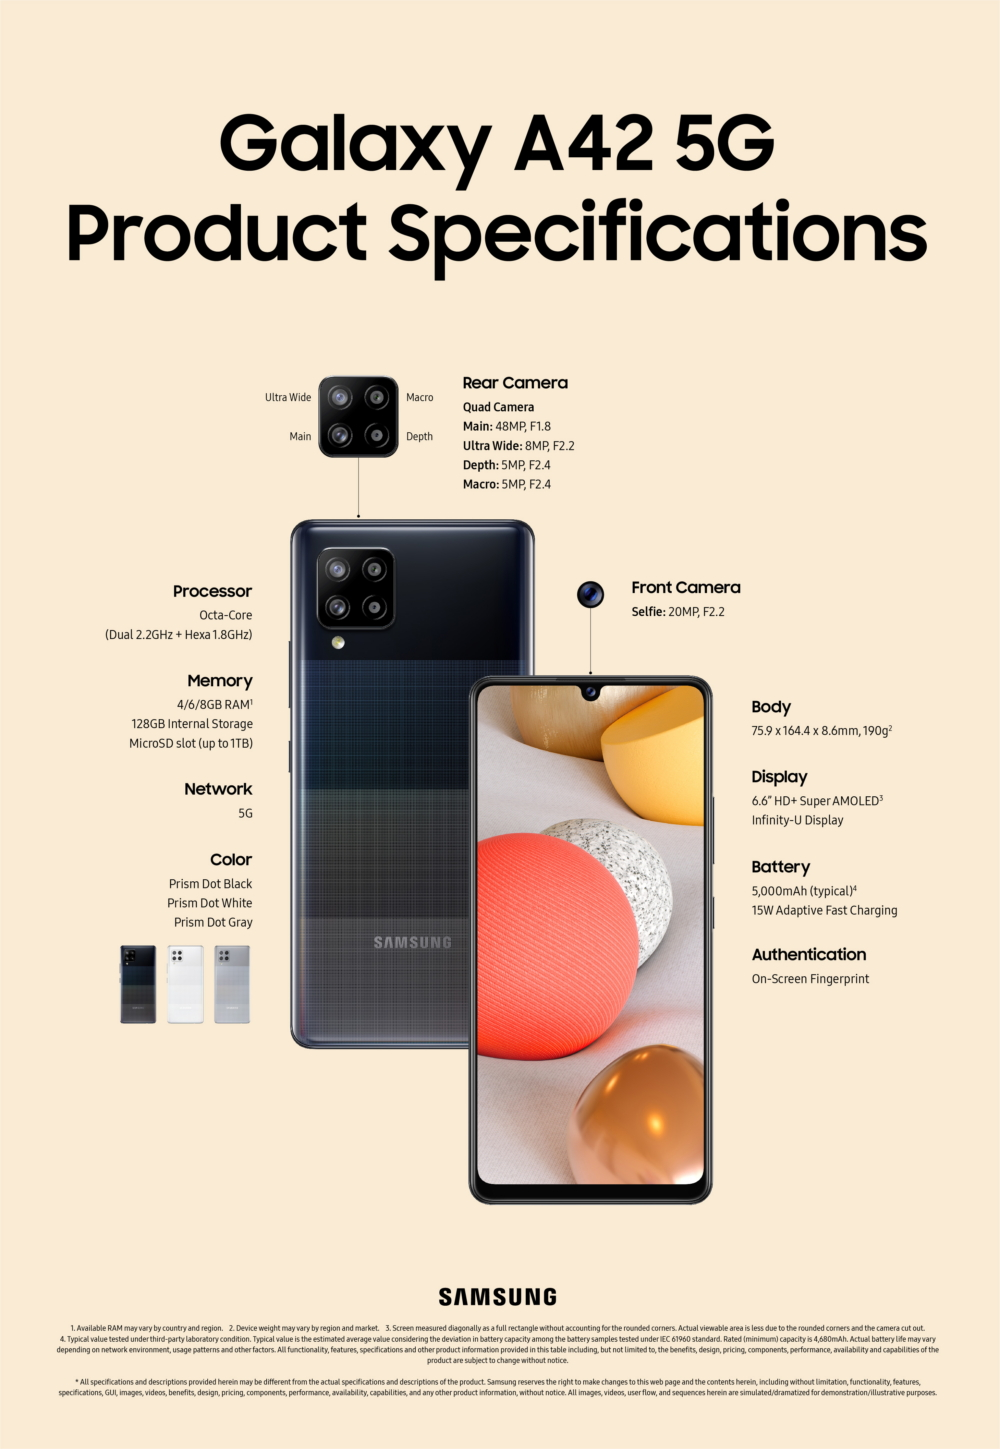 [Infographic] Enjoy Next-Generation Connectivity and Mobile Experiences with the Galaxy A42 5G - Image 1